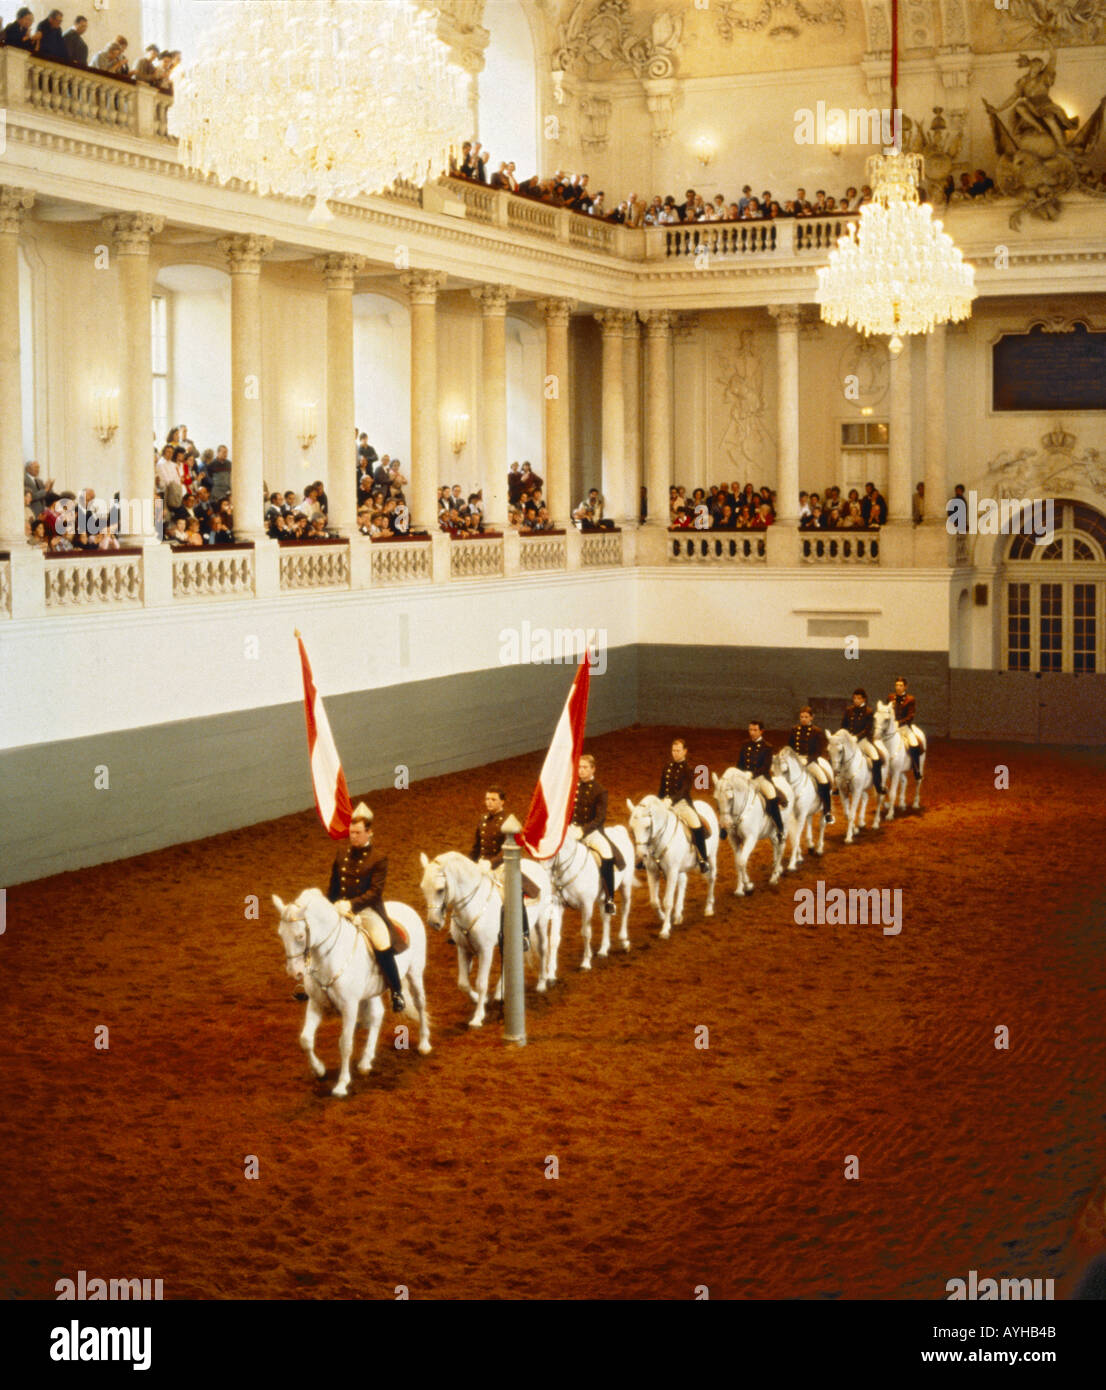 A straight line of riders and horses parade at The Spanish Riding School of Vienna Lipizzaner horse display Austria - Stock Image